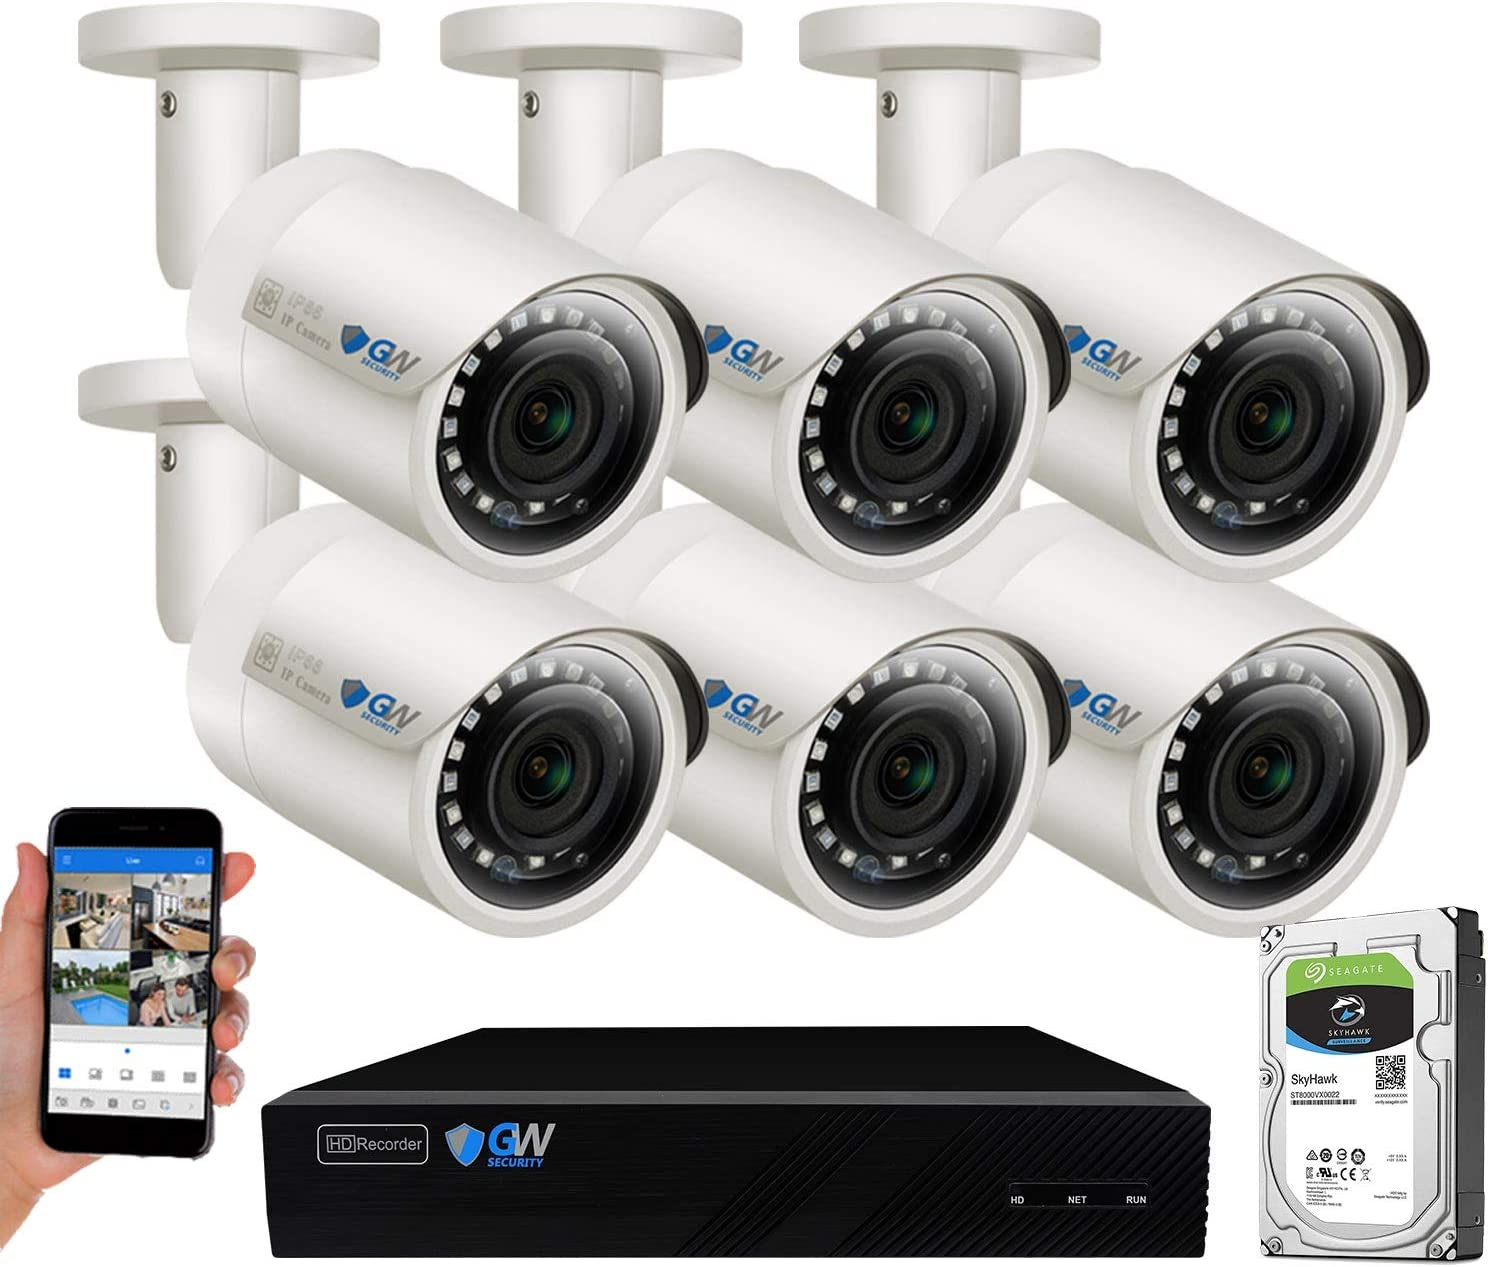 Pre-installed 2TB HDD, 2x HDD bay, up to 16TB total GW Security 8 Channel H.265 4K HDMI NVR // Network Video Recorder 8CH PoE Ports Compatible with 8MP // 5MP //4MP 1080P Realtime ONVIF IP Cameras